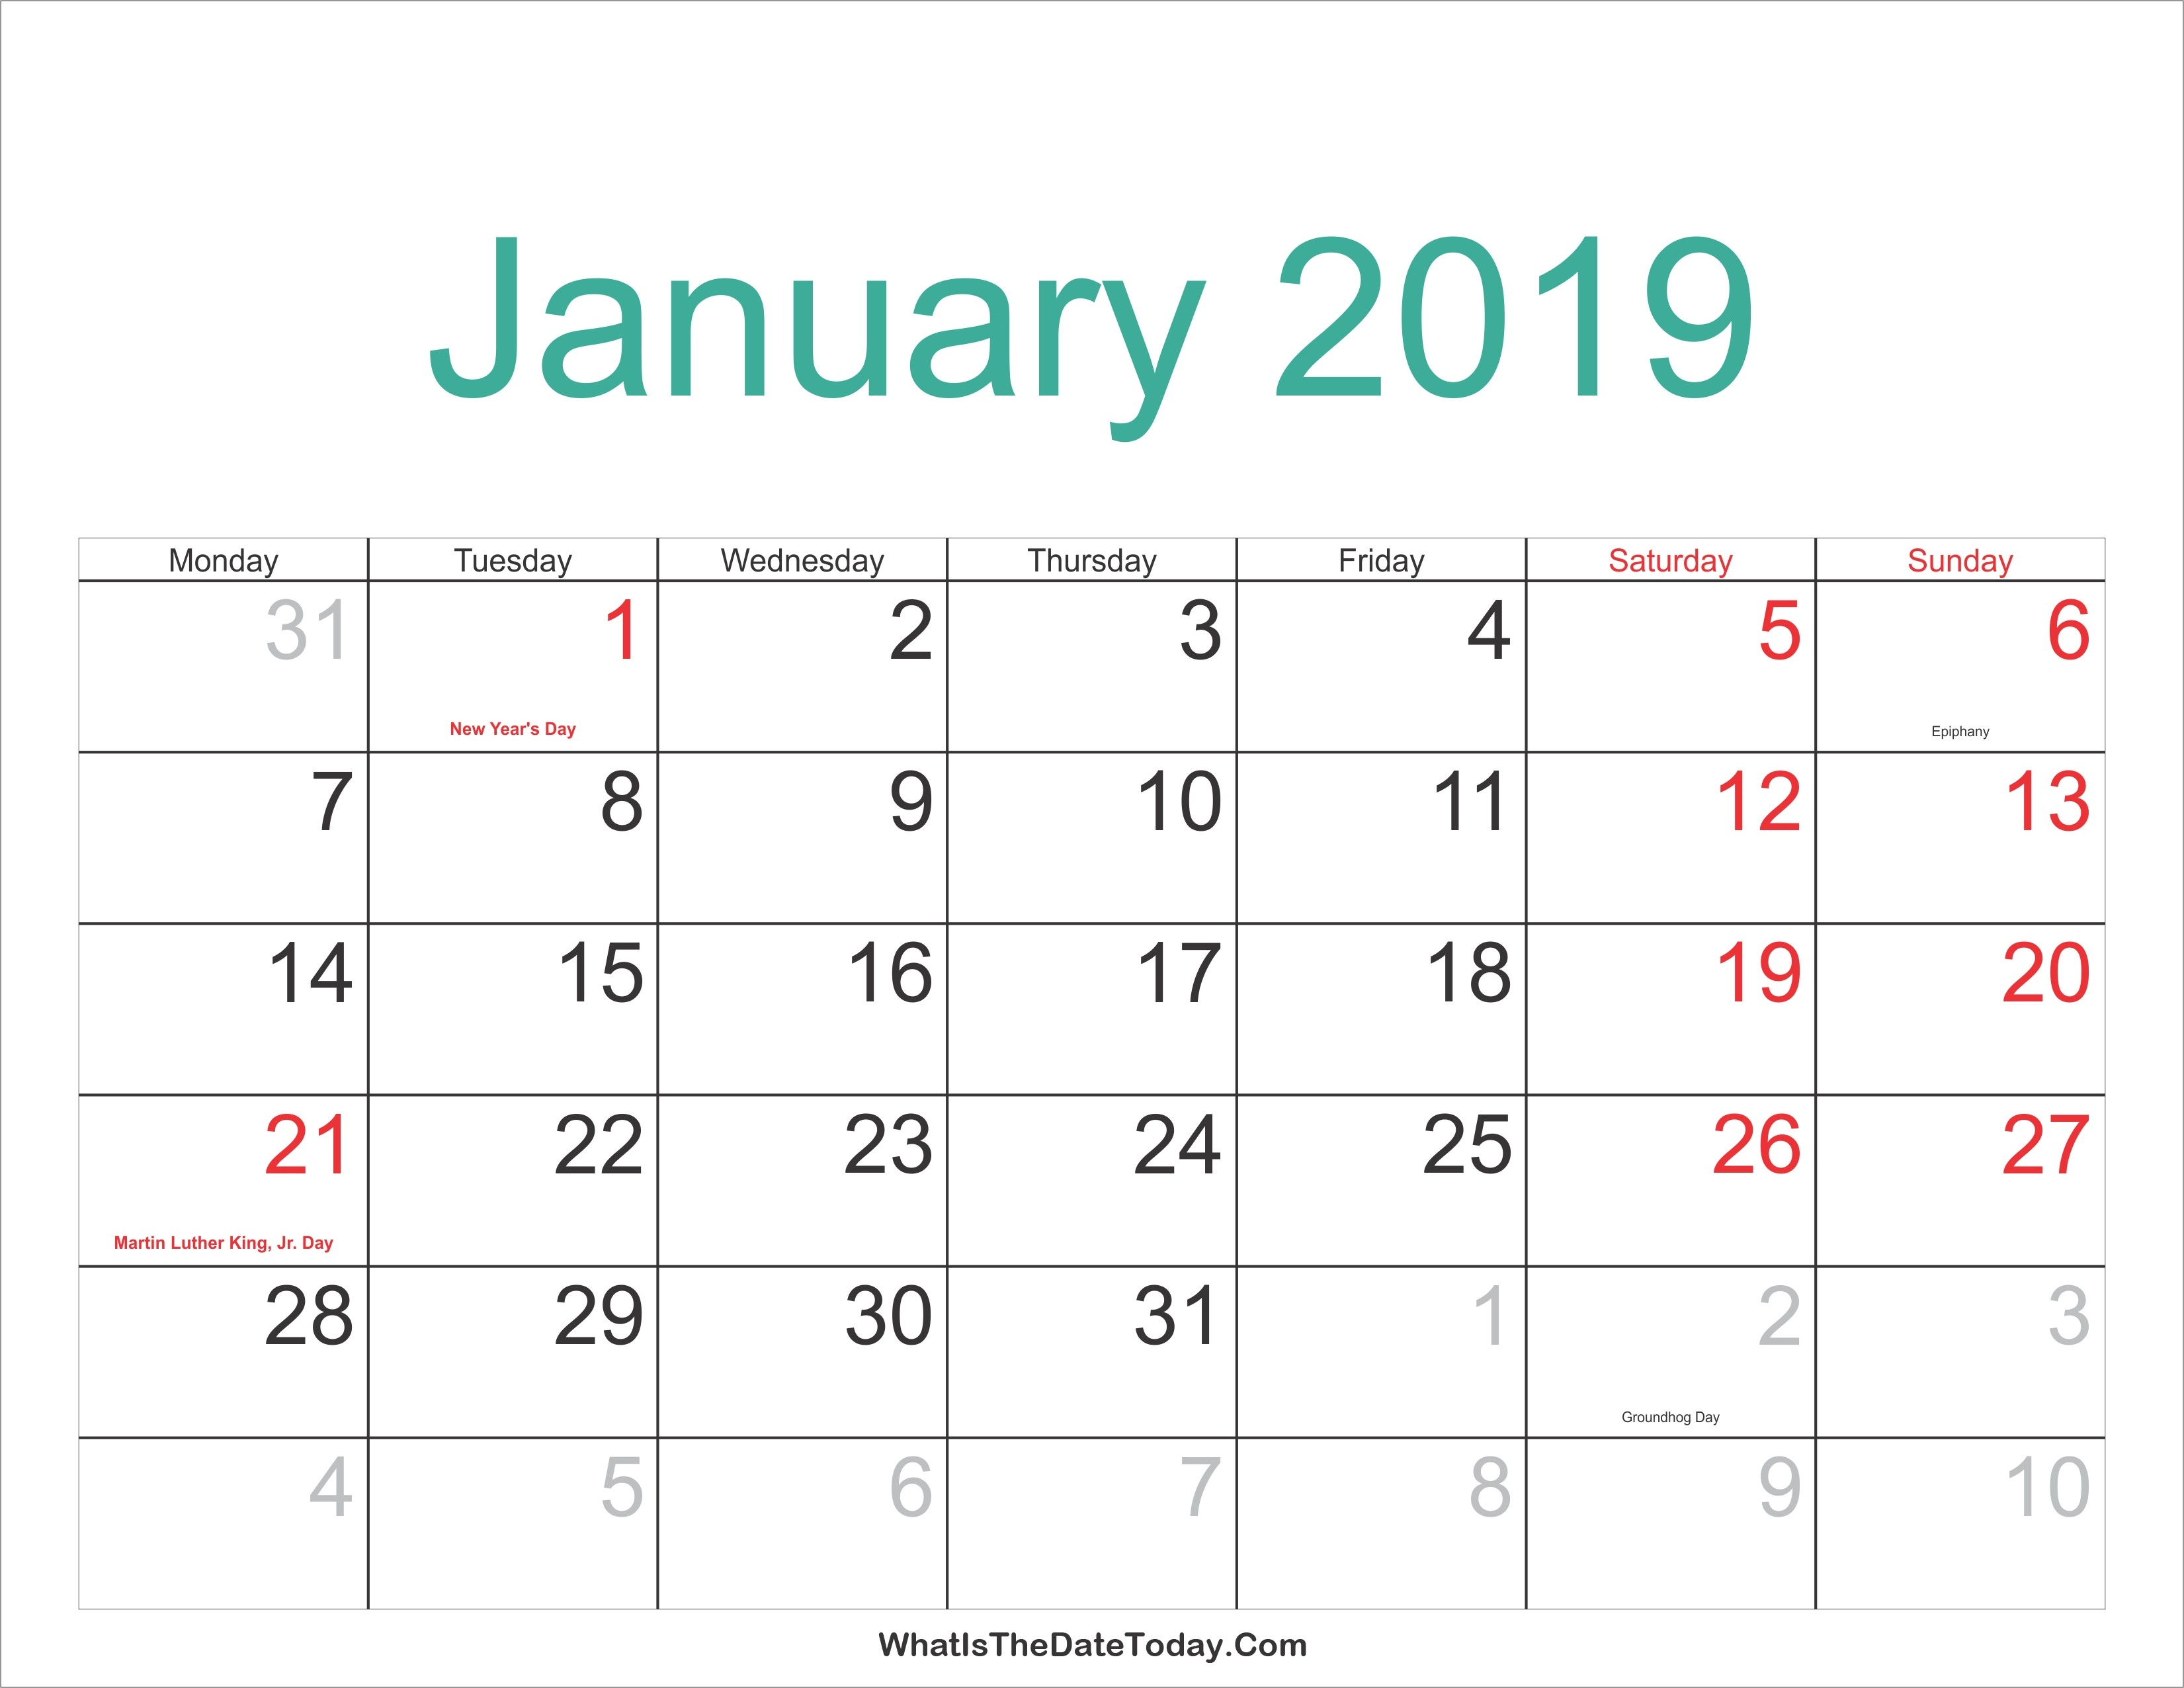 Islamic New Year 2019 Calendar With Jewish Holidays 20 Hype Journey